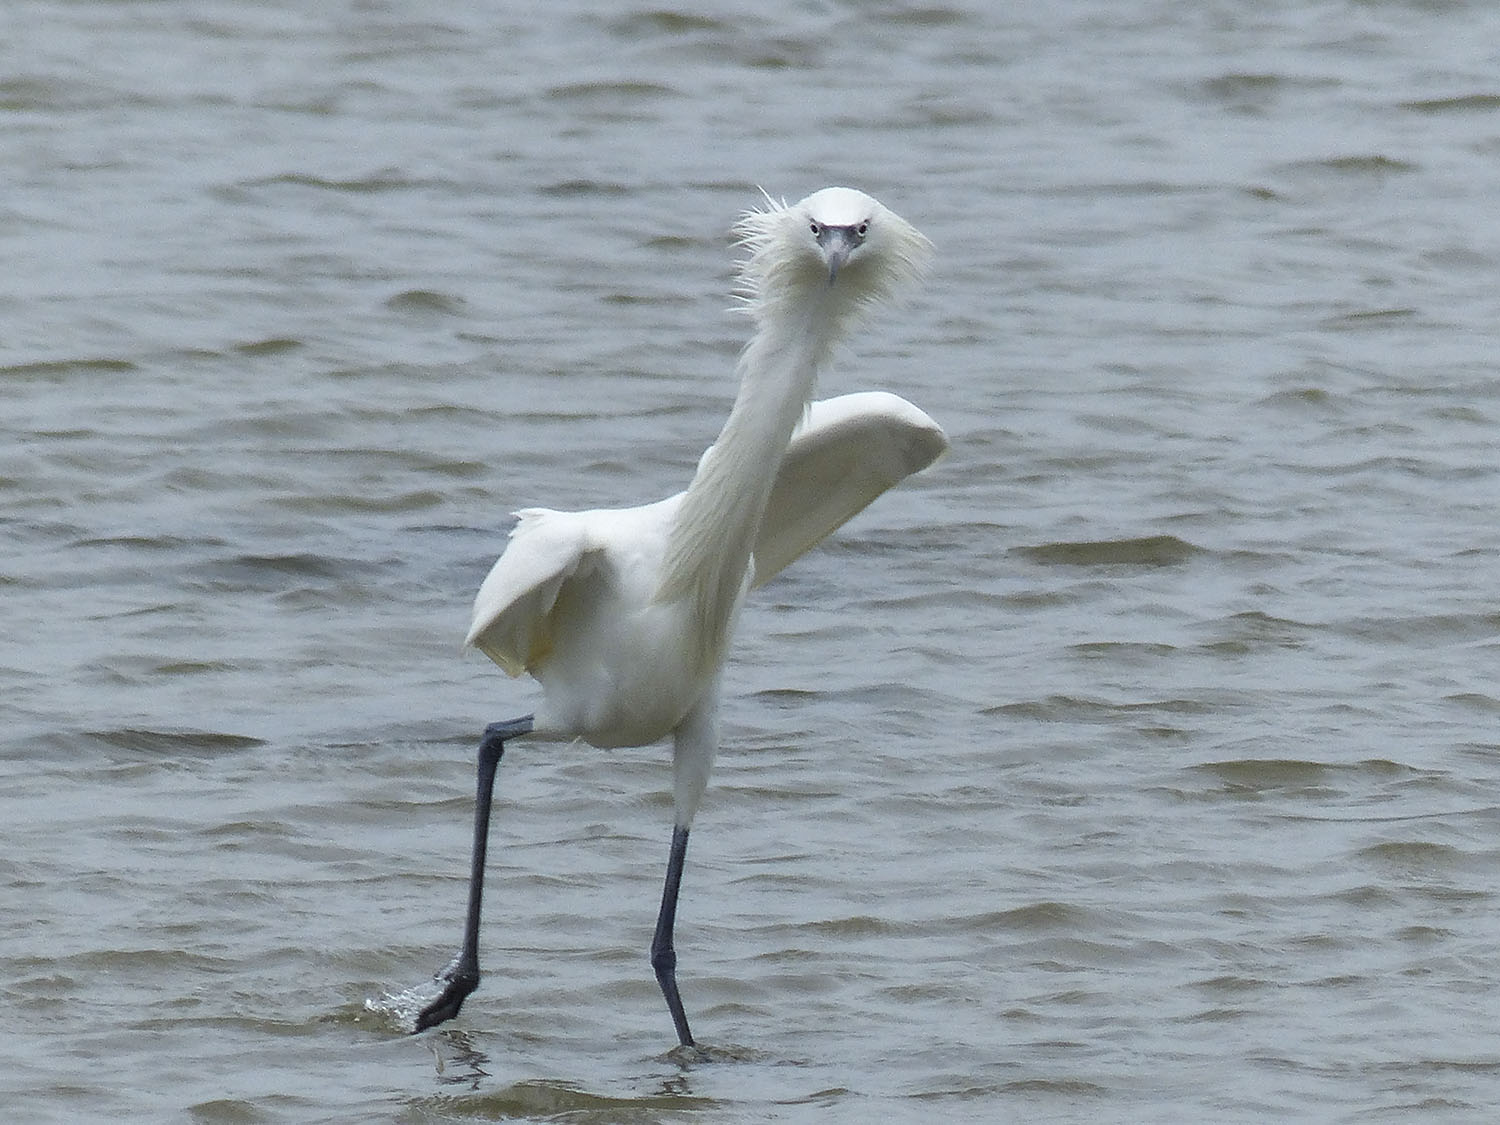 White morph Reddish Egret changing directions and giving me the evil eye